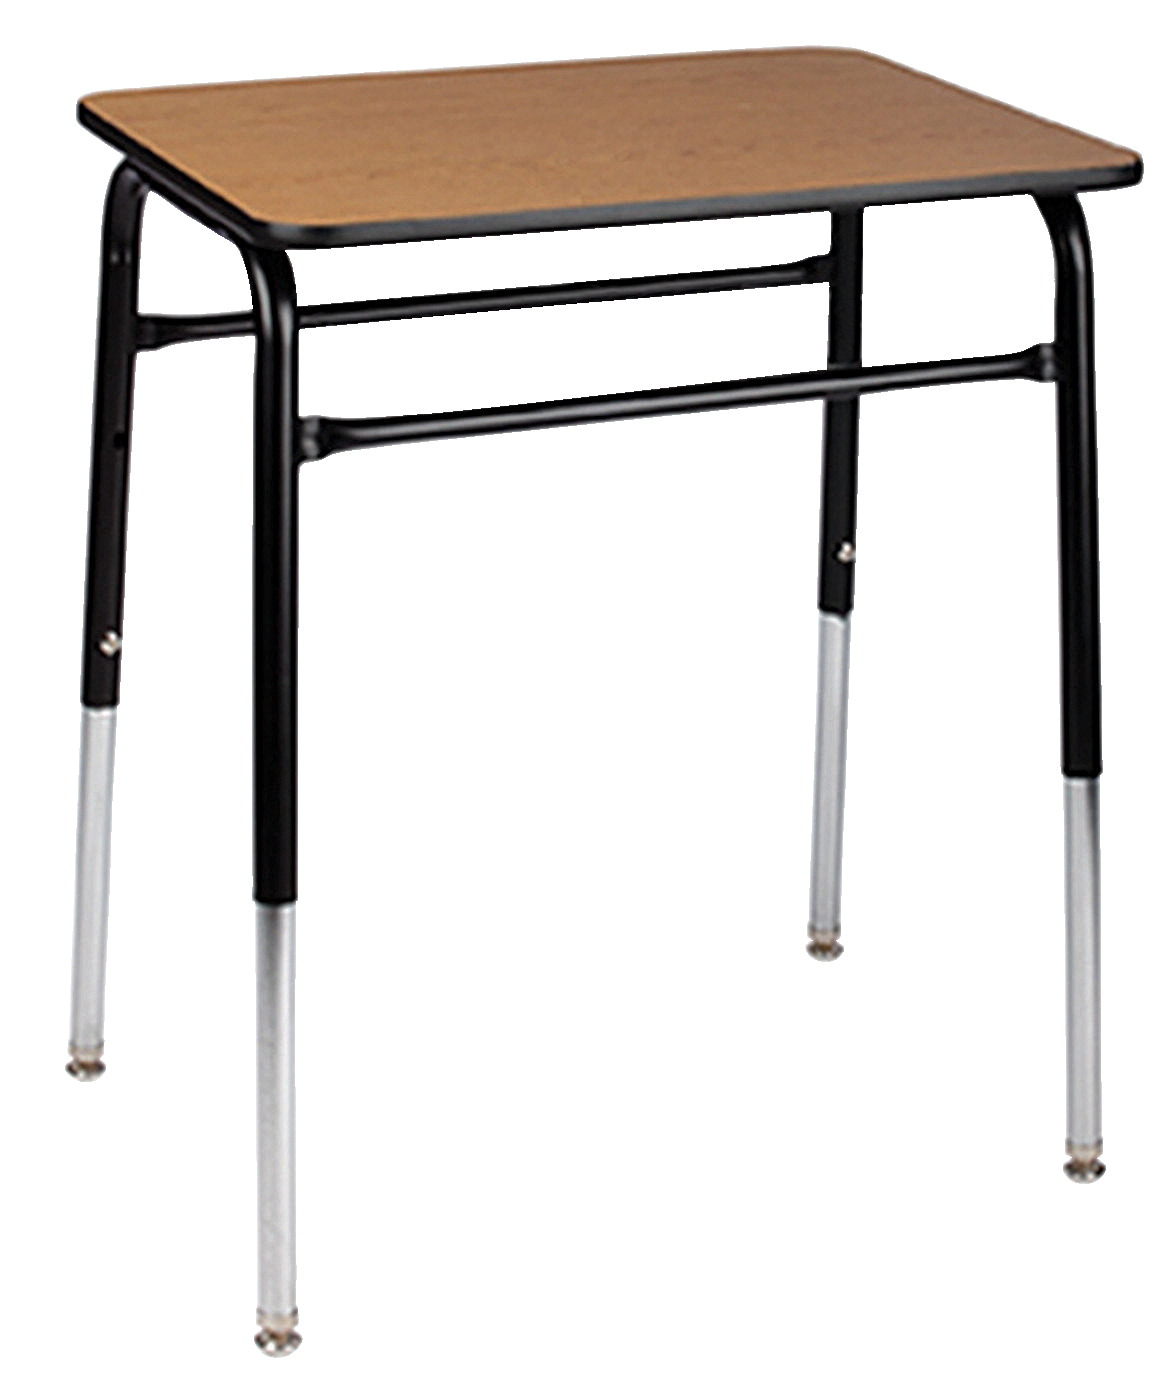 Royal Seating 1600 Study Top Student Desk, 18 x 24 Inch Laminate Top, T-Mold, Various Options